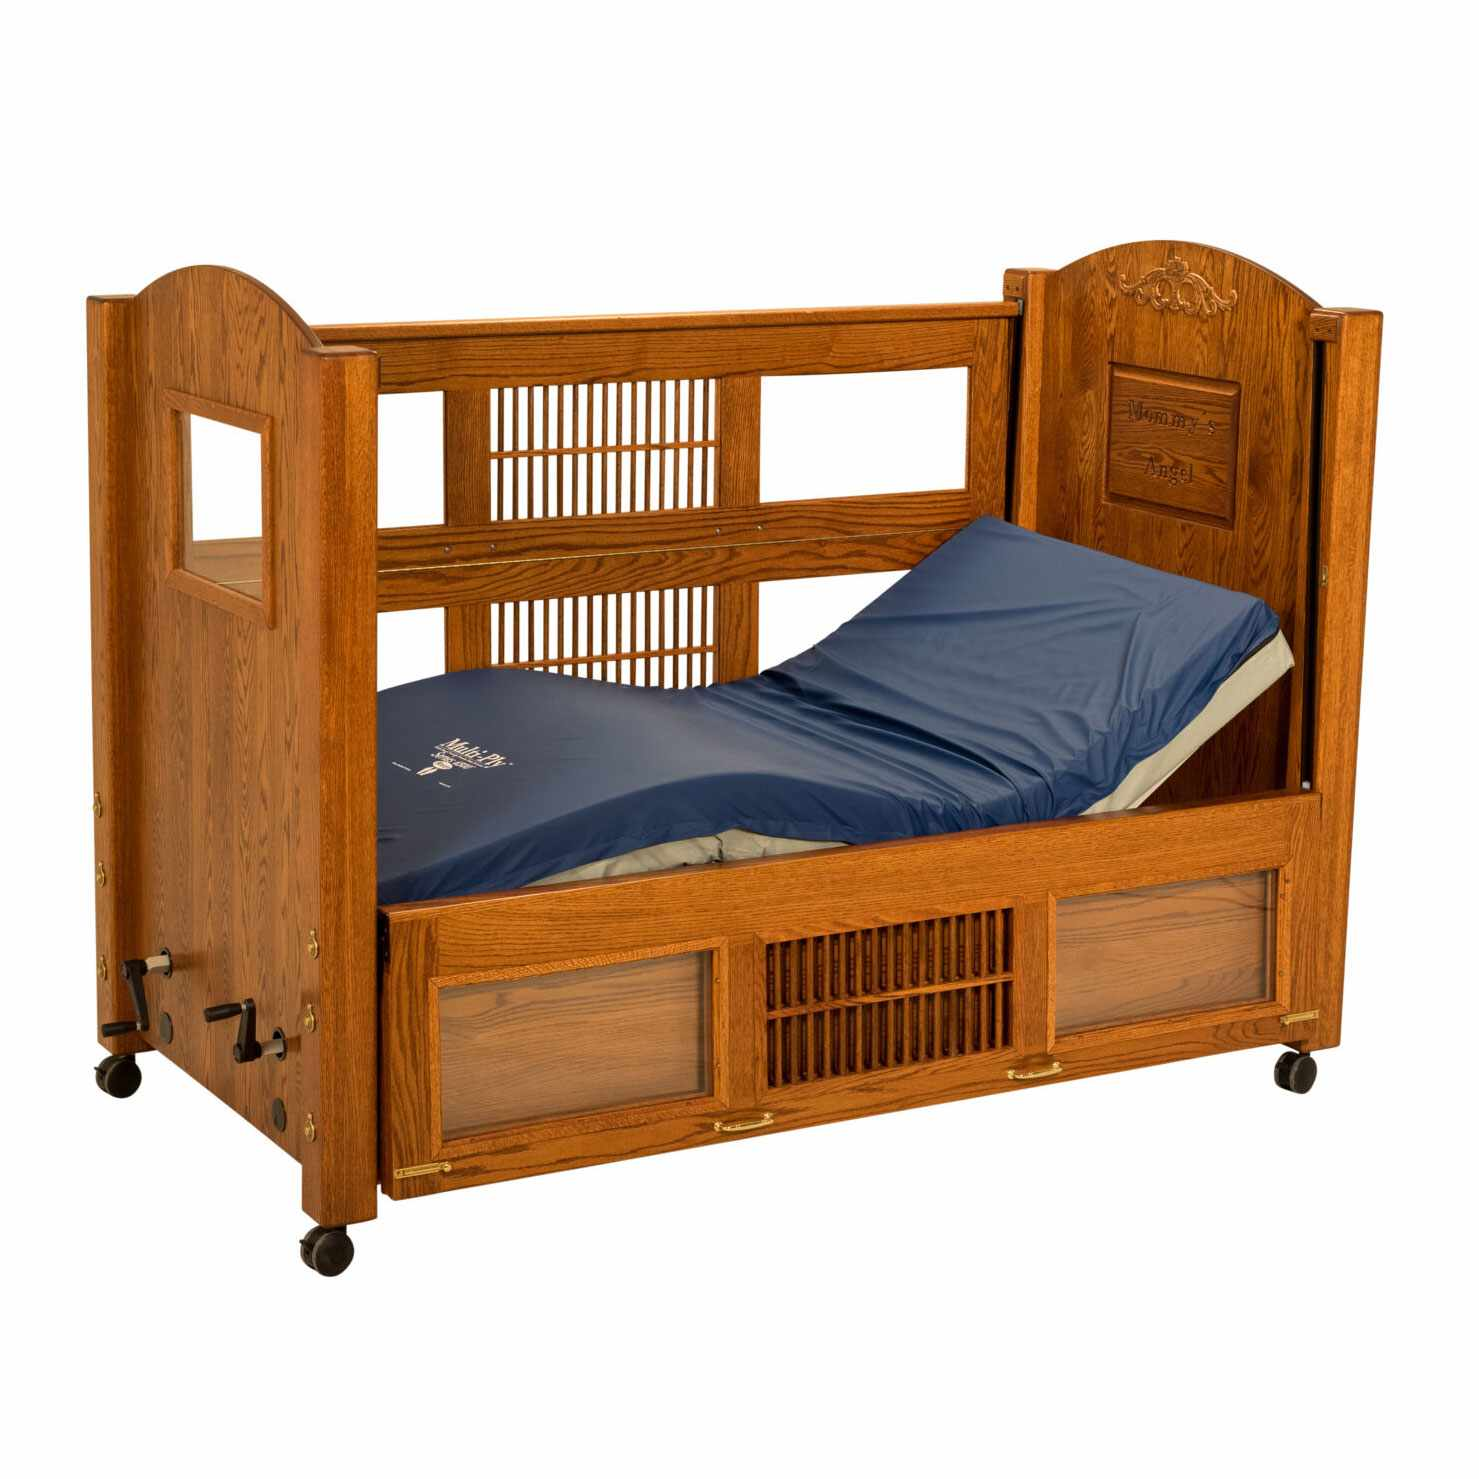 Dream series twin size bed